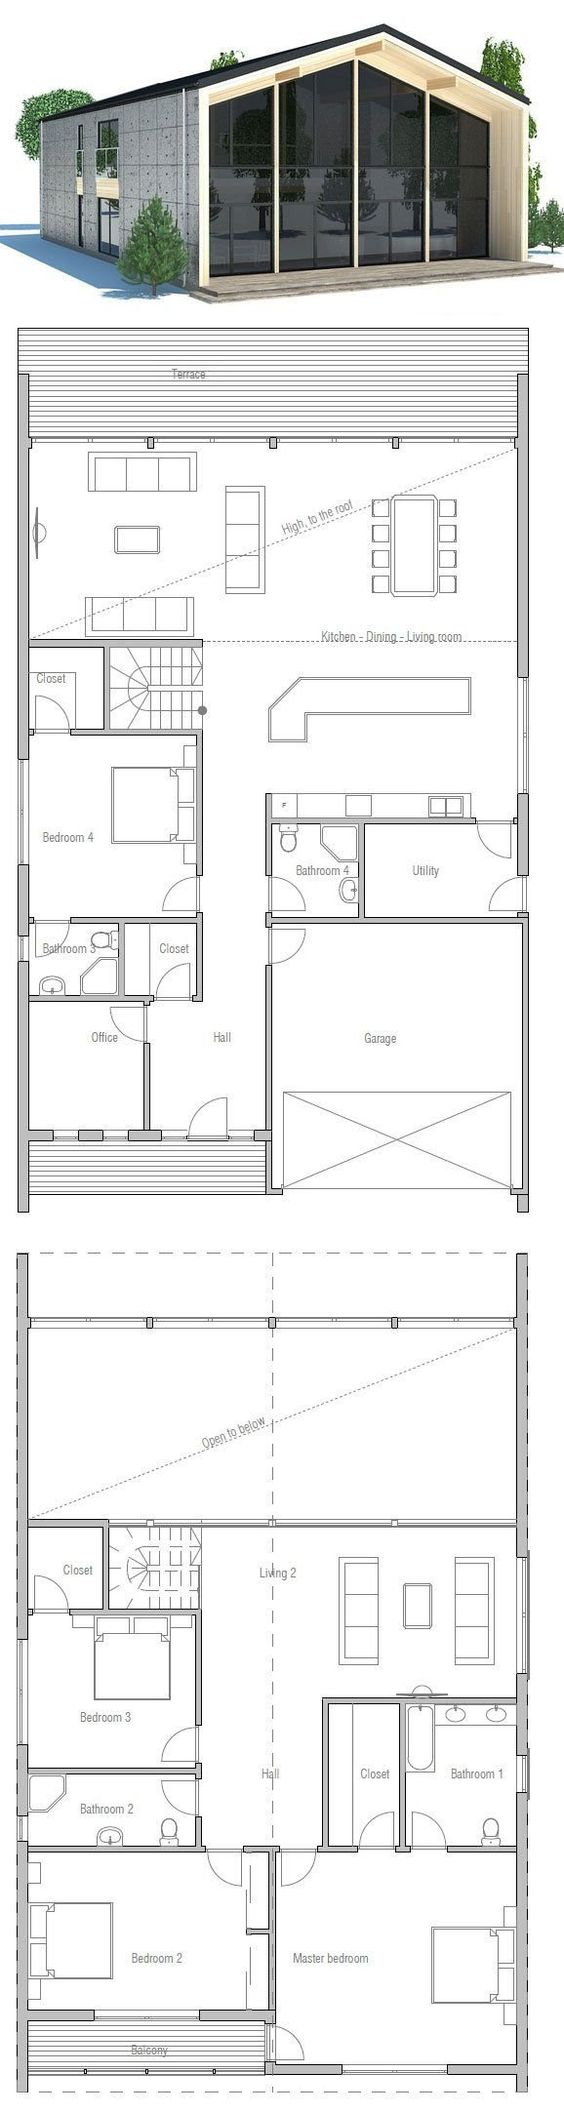 House plans, House and Modern on Pinterest - ^